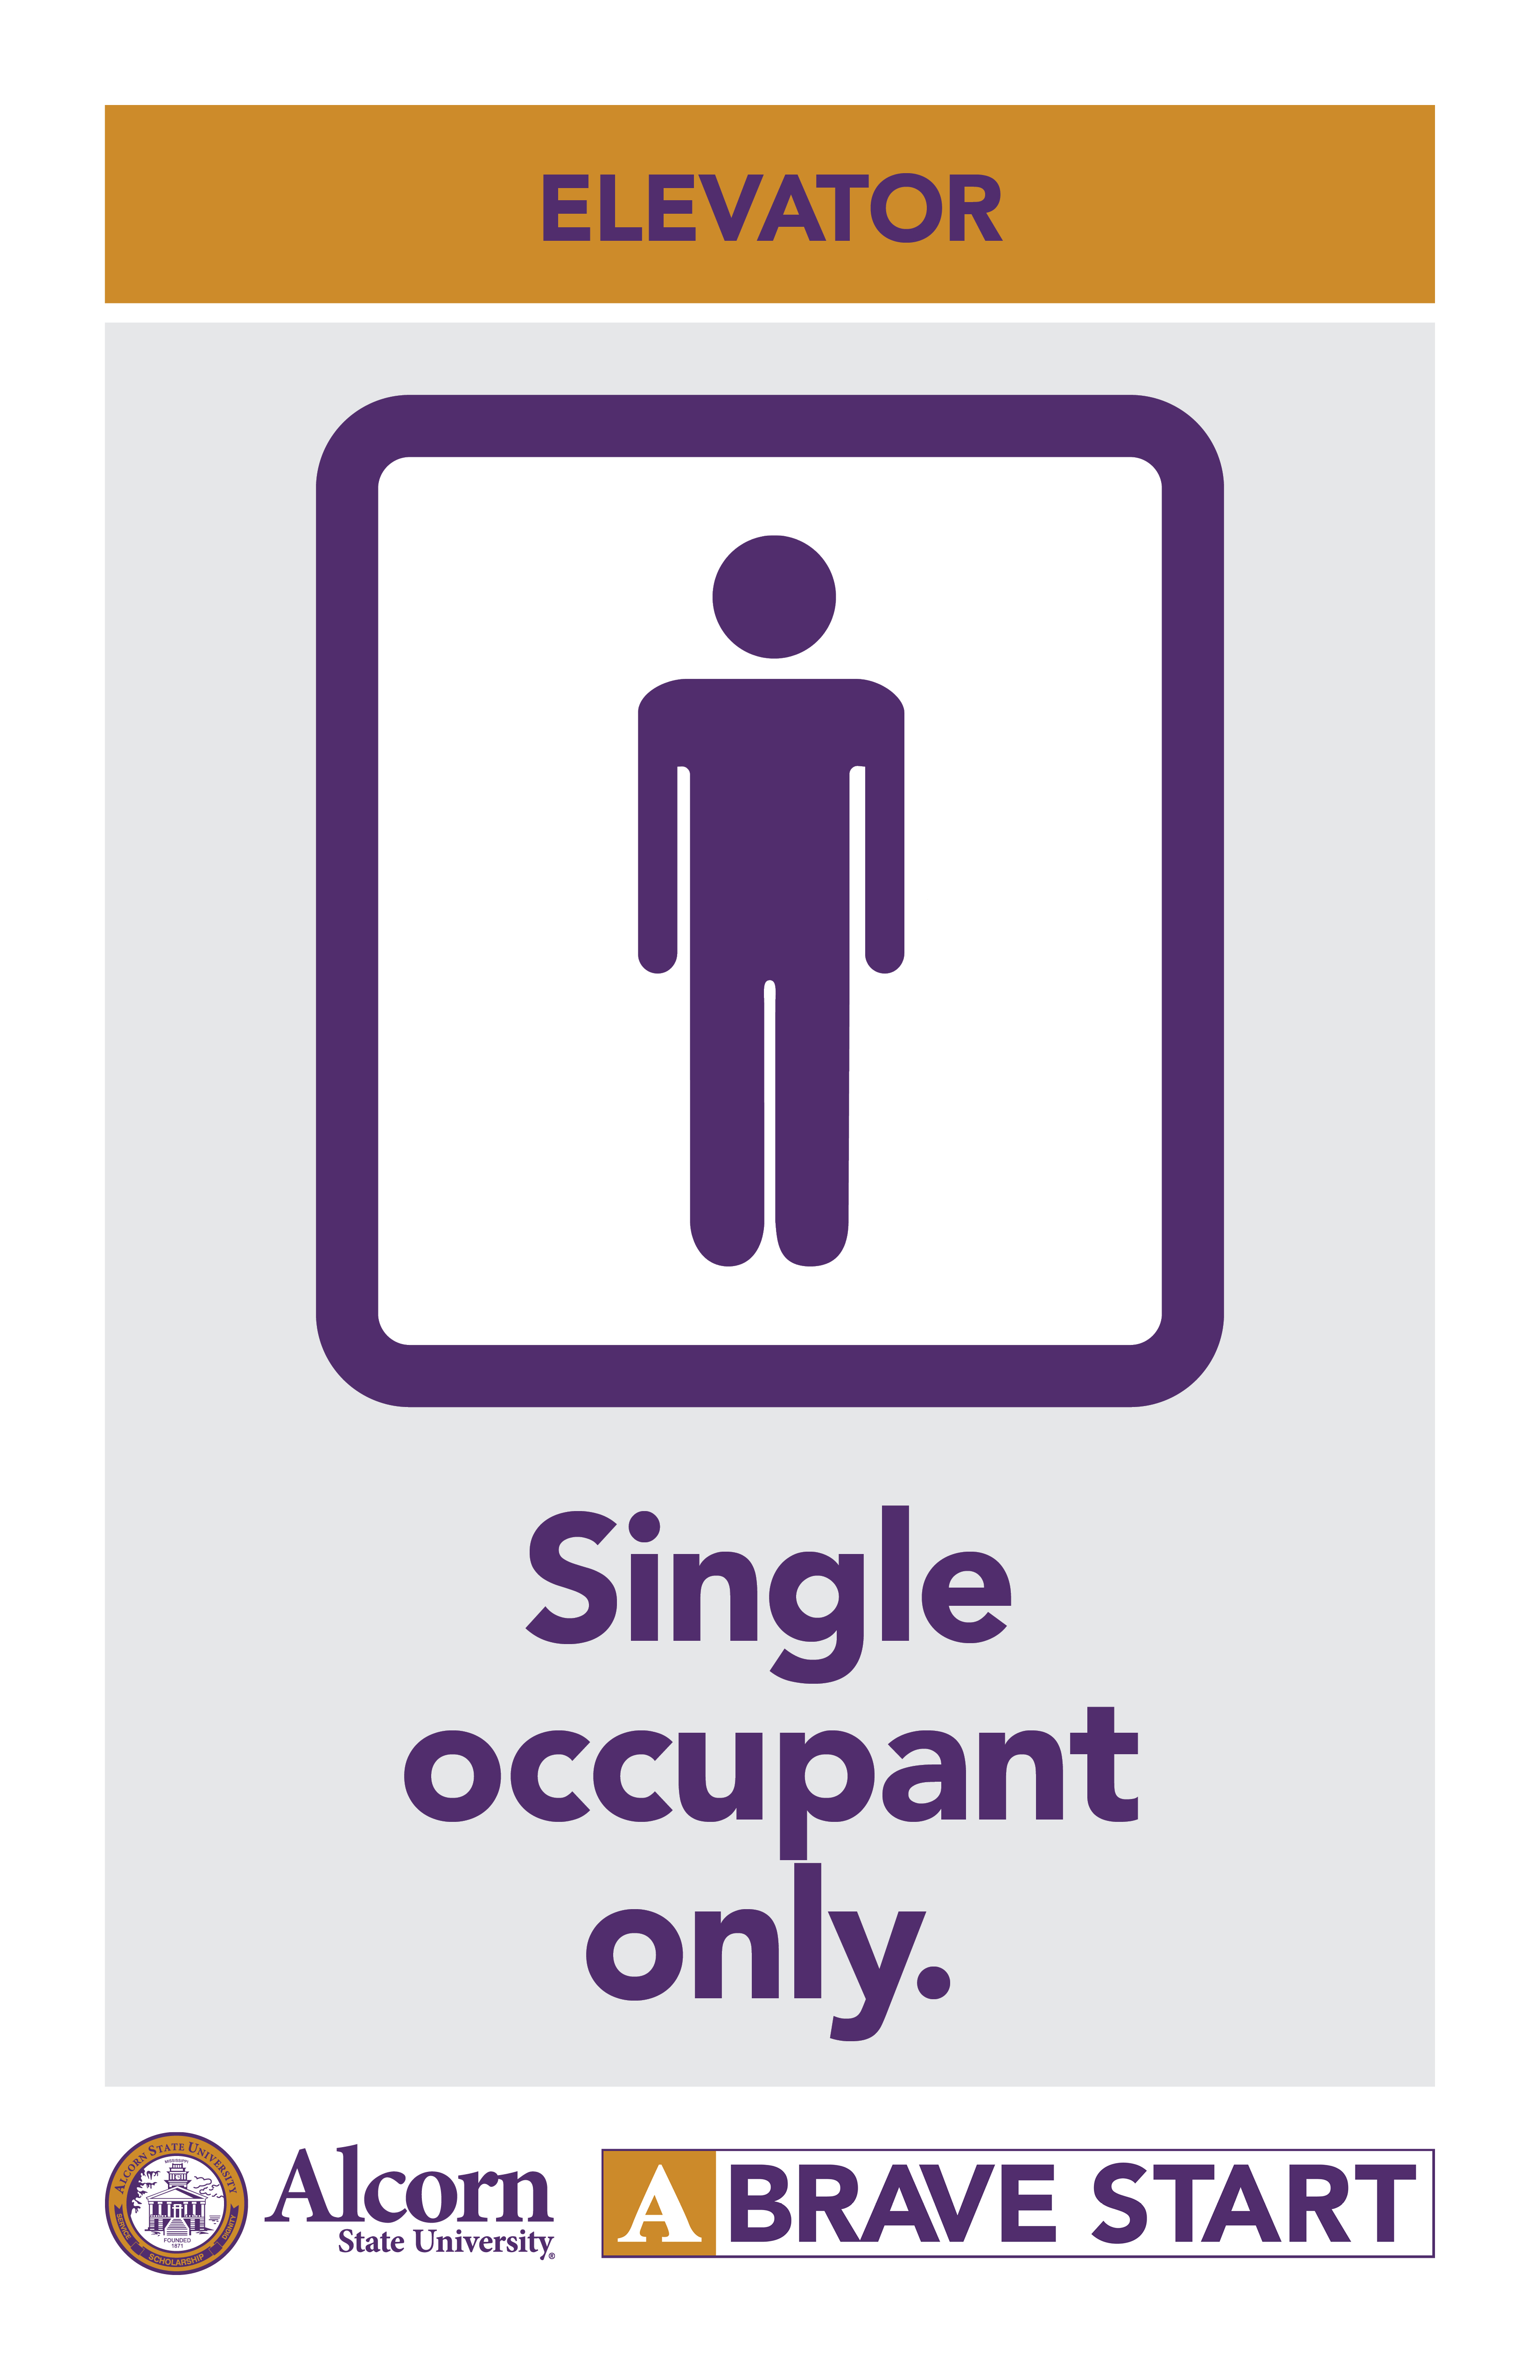 ELEVATOR. (Picture of a person in an elevator) Single occupant only. (Alcorn logo mark. A Brave Start logo mark.)